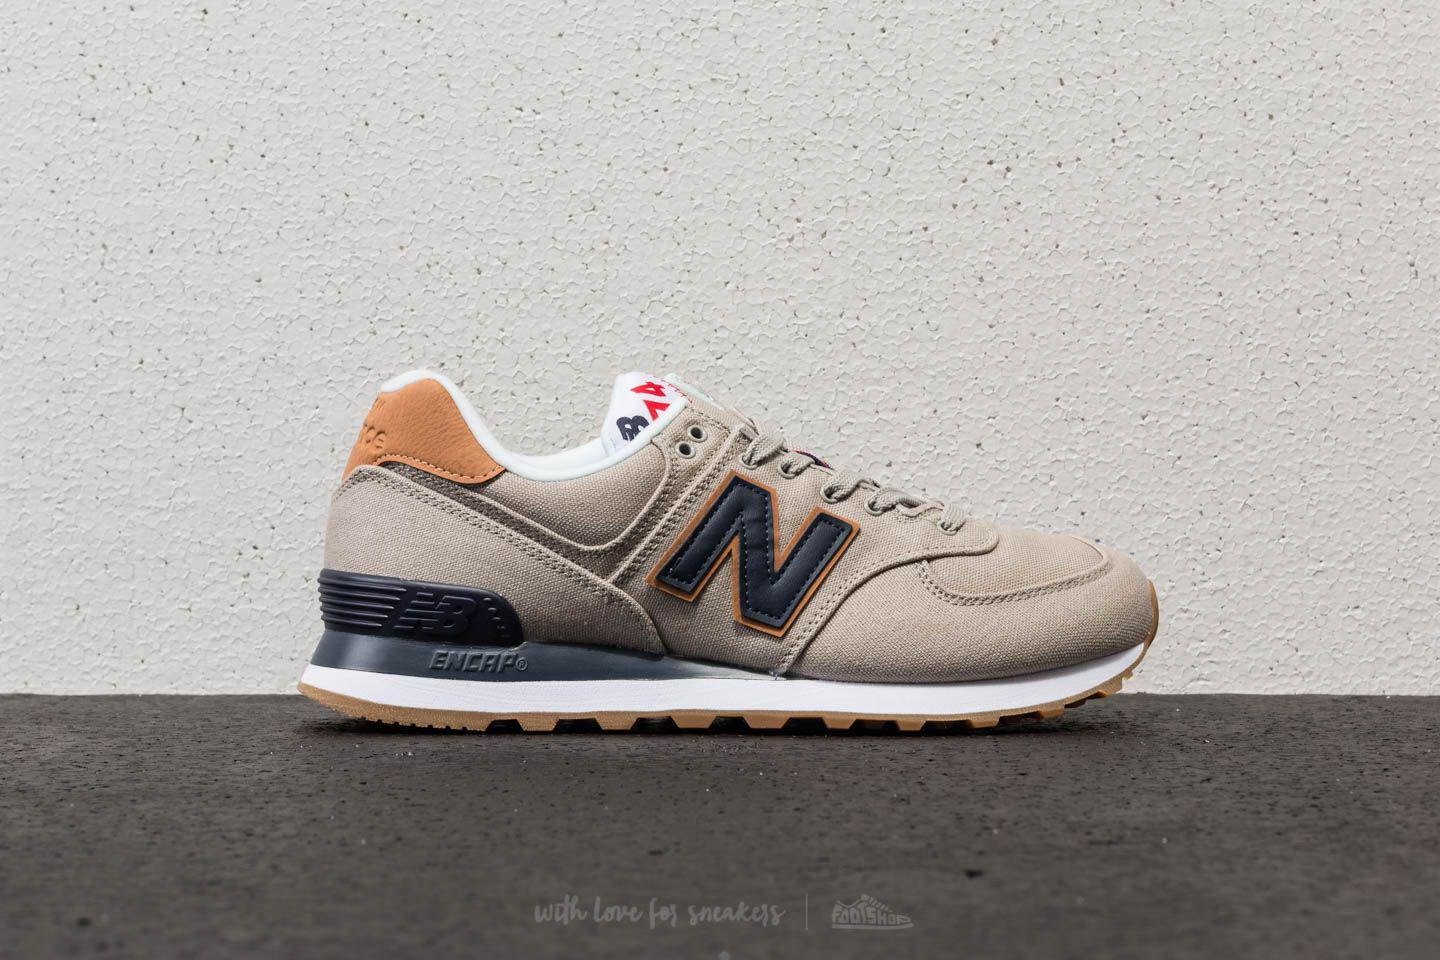 New Balance Suede 574 Stone Grey in